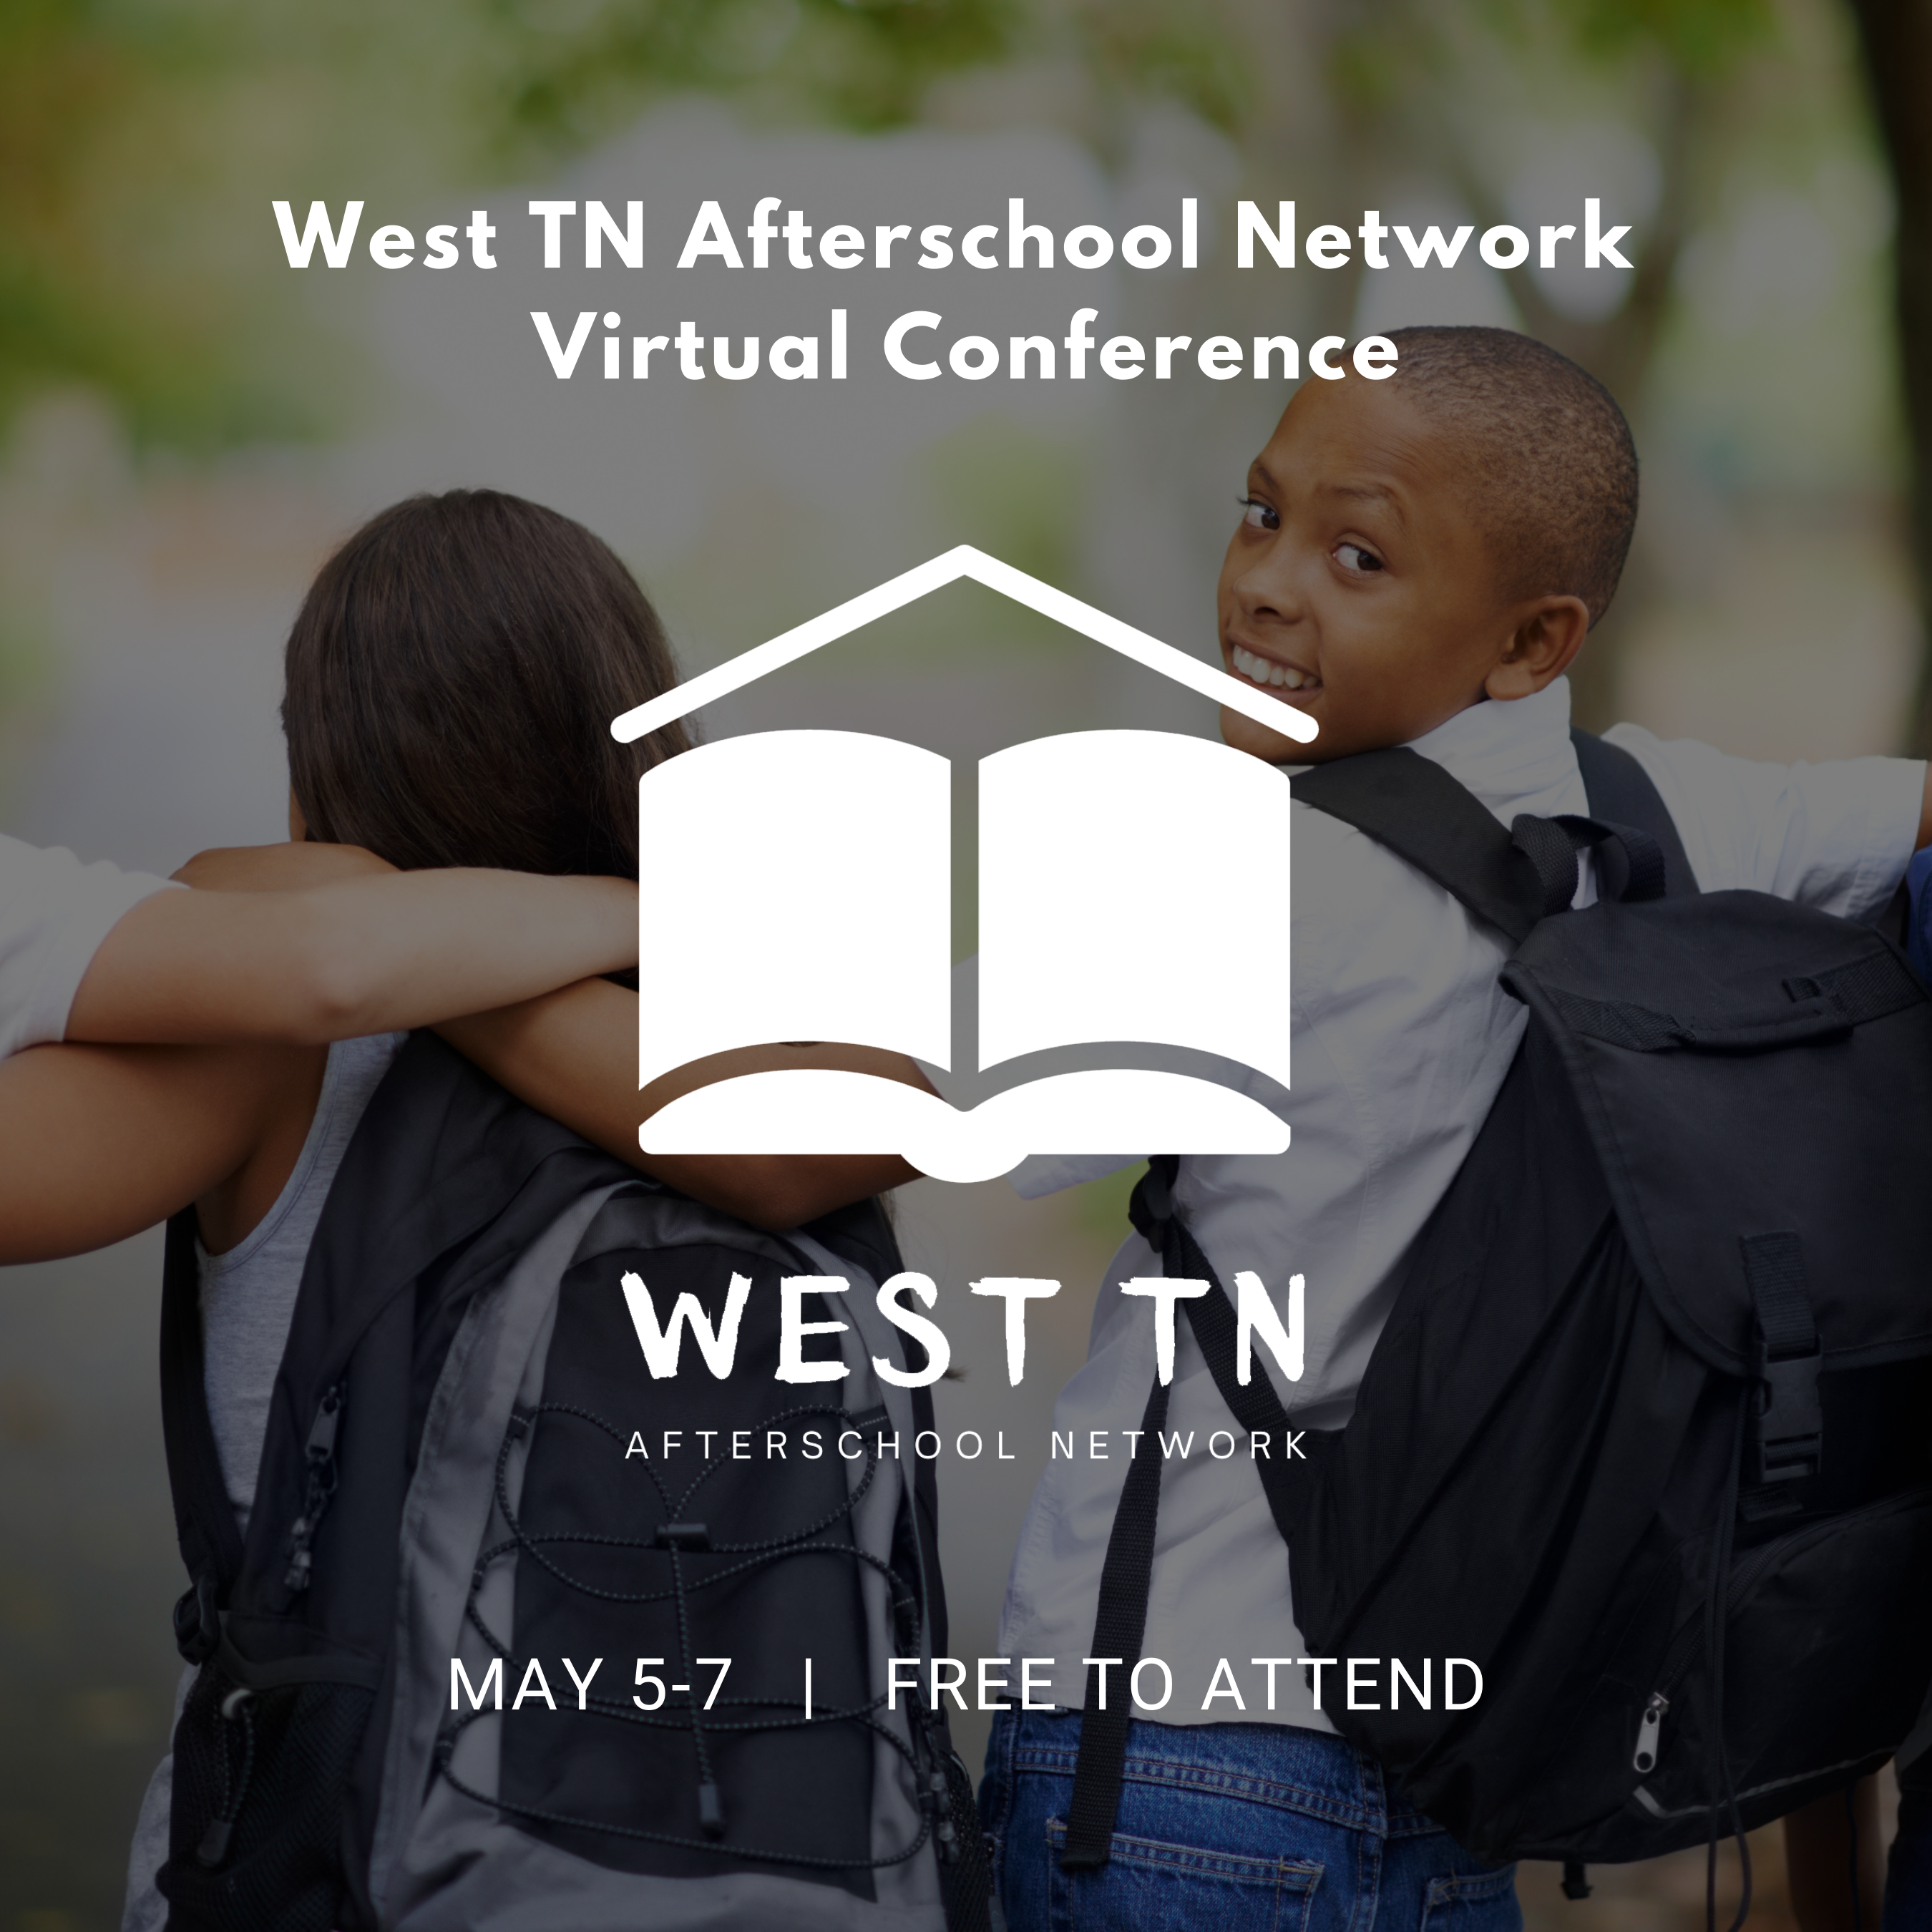 West TN Afterschool Network Virtual Conference